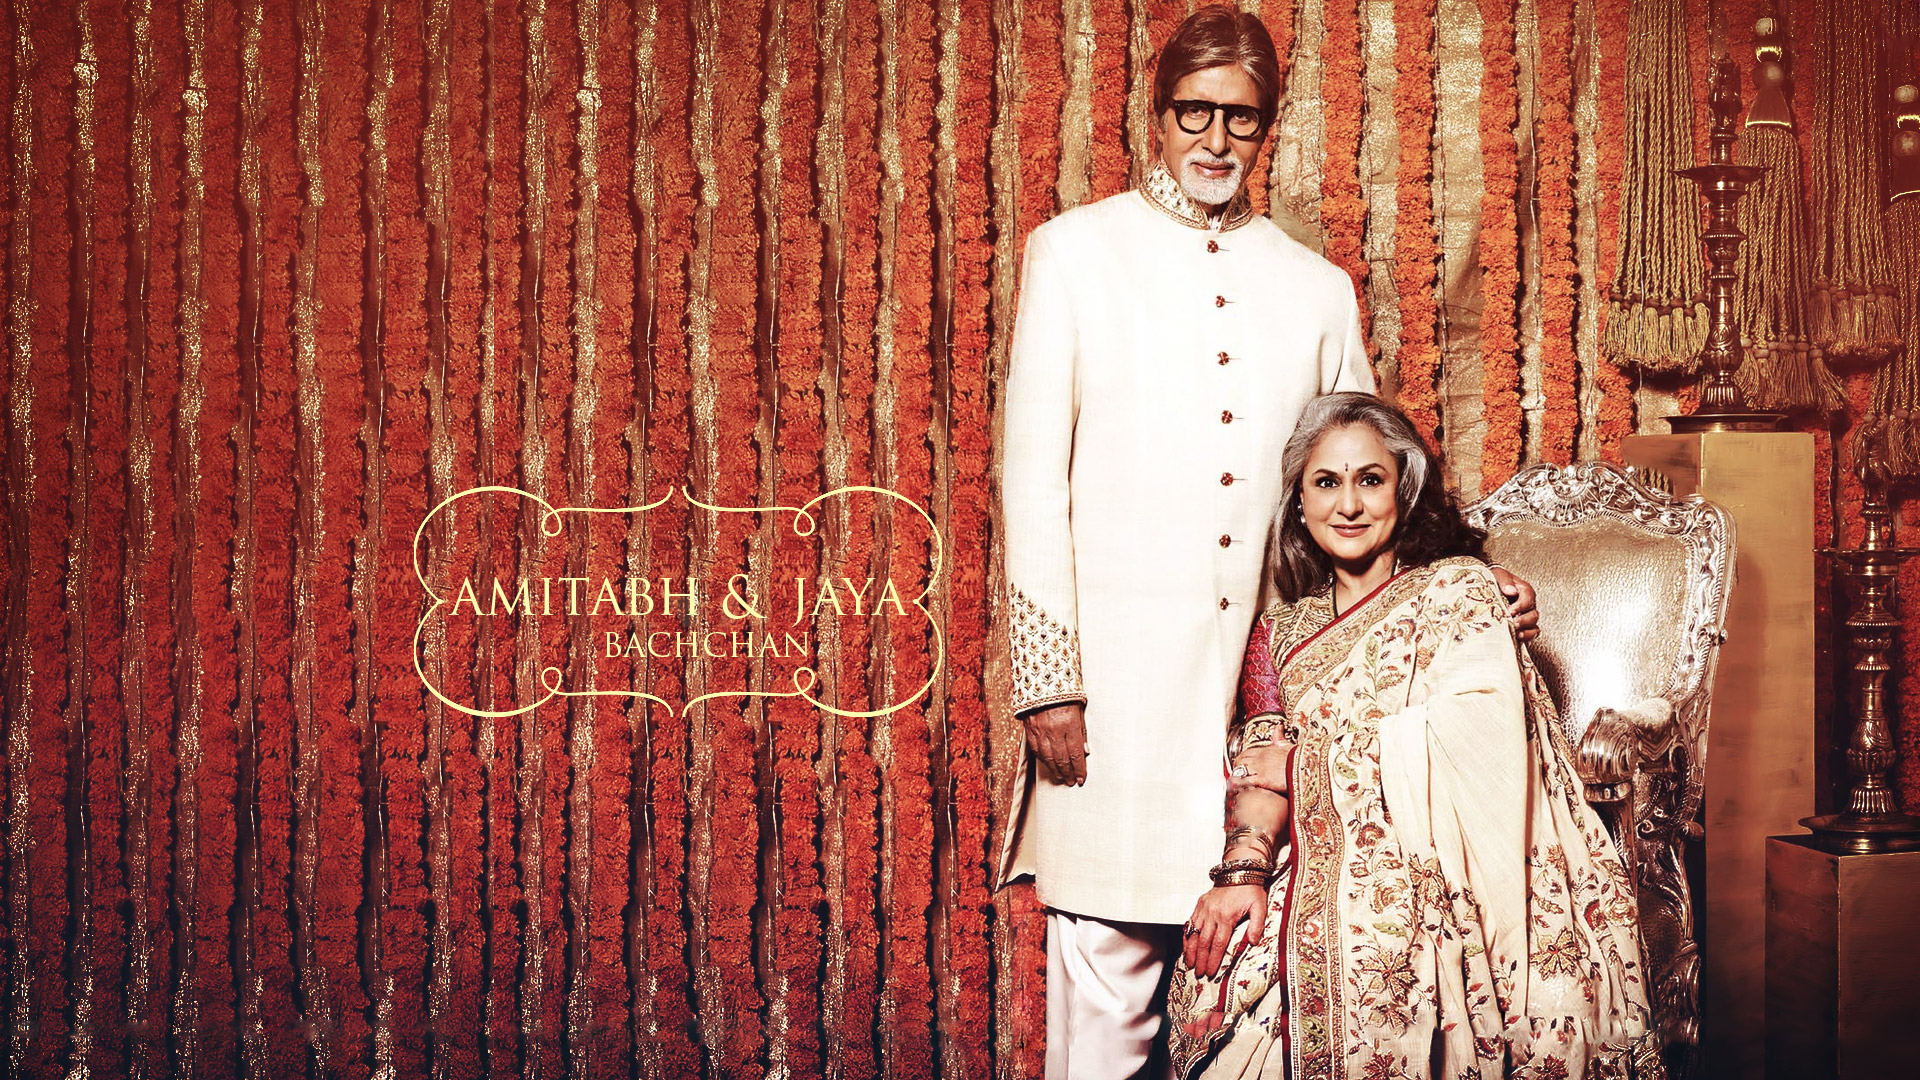 Amitabh & Jaya Bachchan Celebrates their 42nd Wedding Anniversary